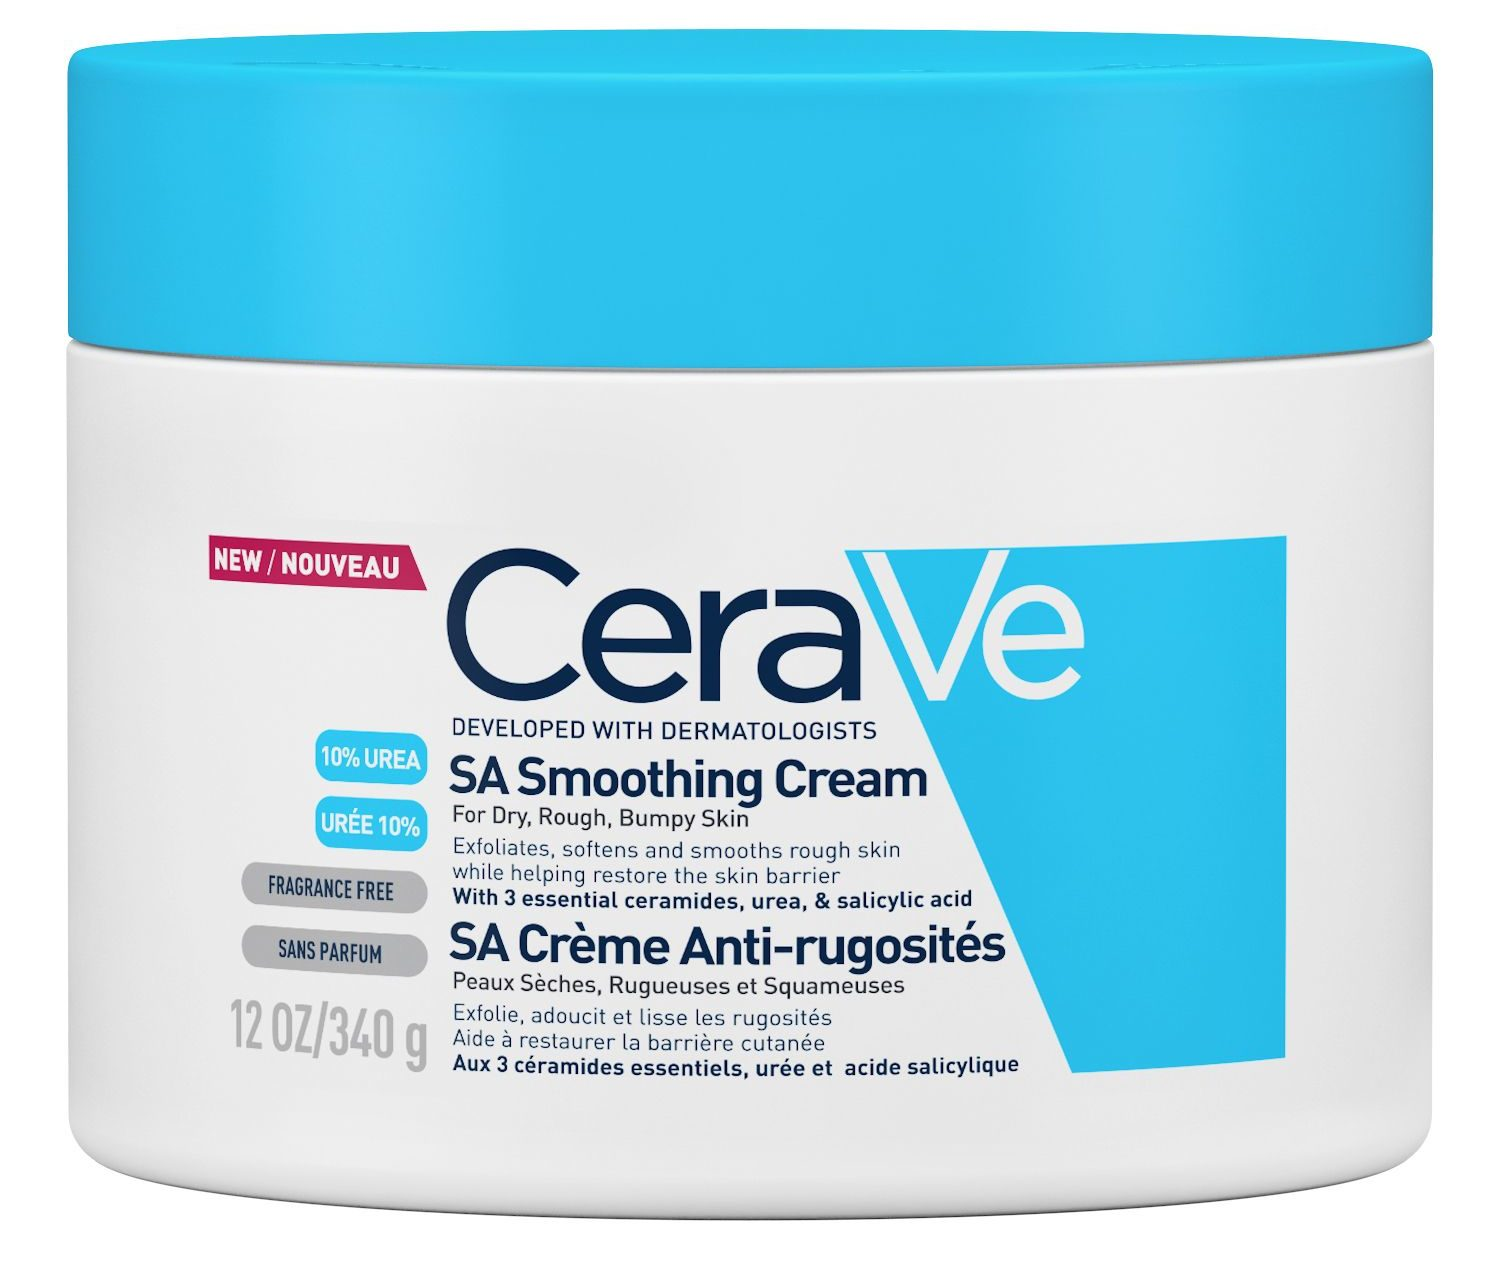 My Celebrity Life – CeraVe SA Smoothing Cream